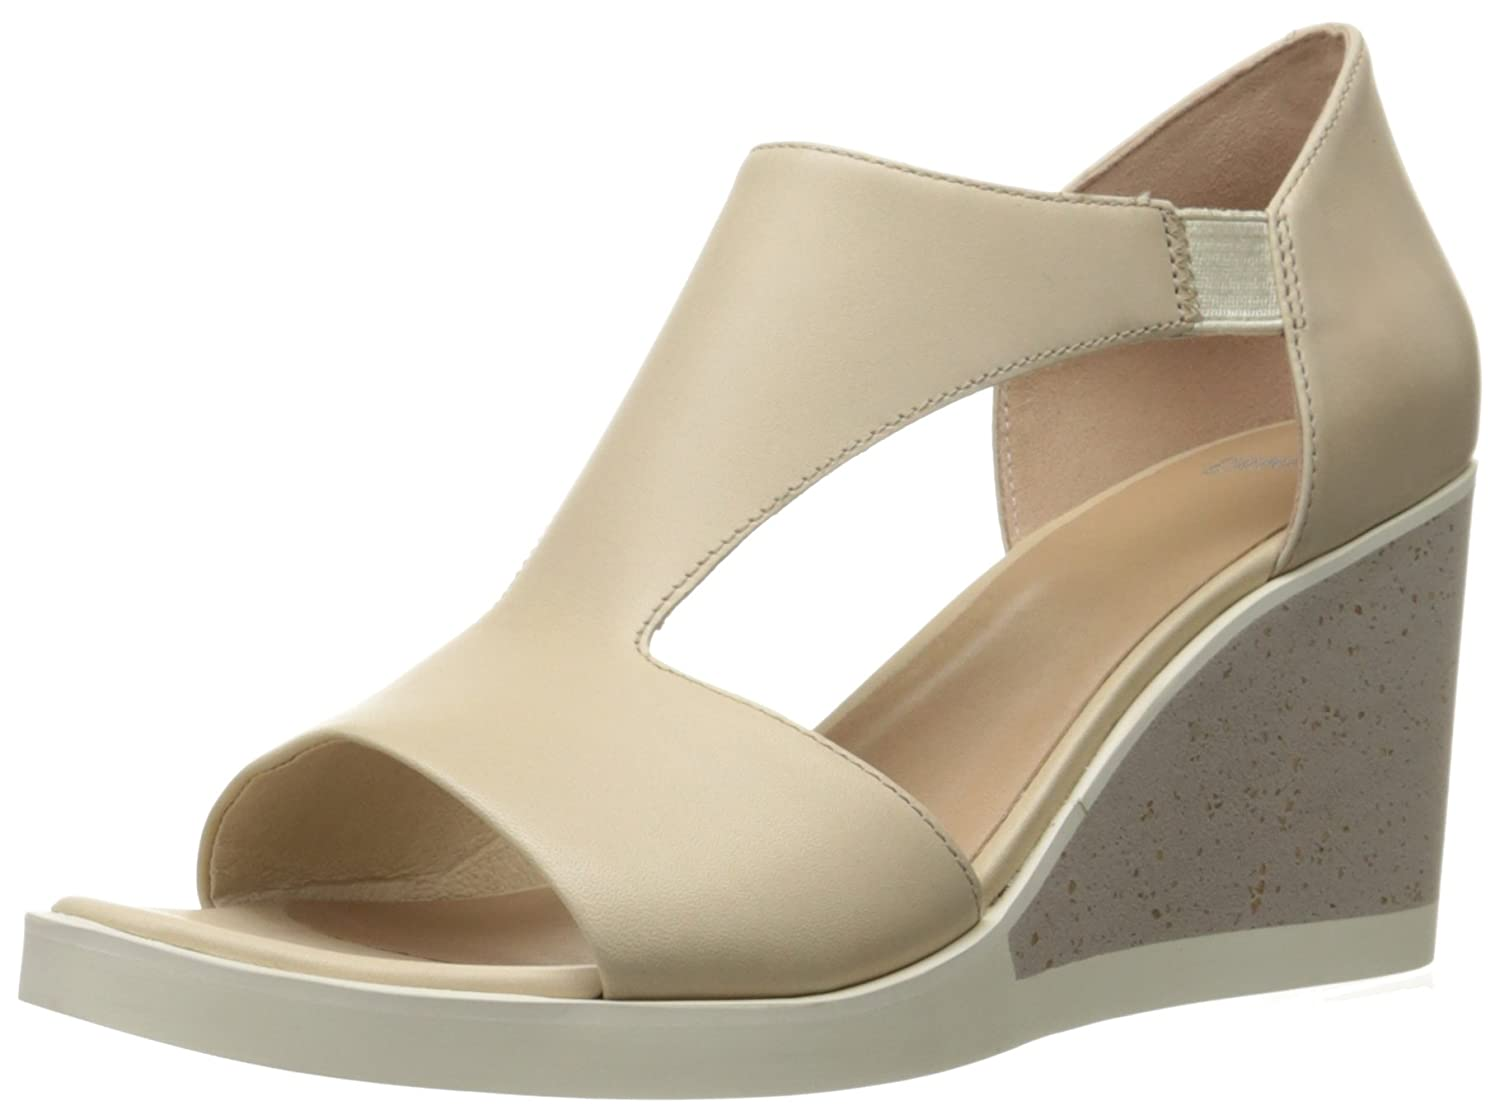 Camper Women's Limi Wedge Pump B011BCUI70 41 M EU / 11 B(M) US|Medium Beige 3